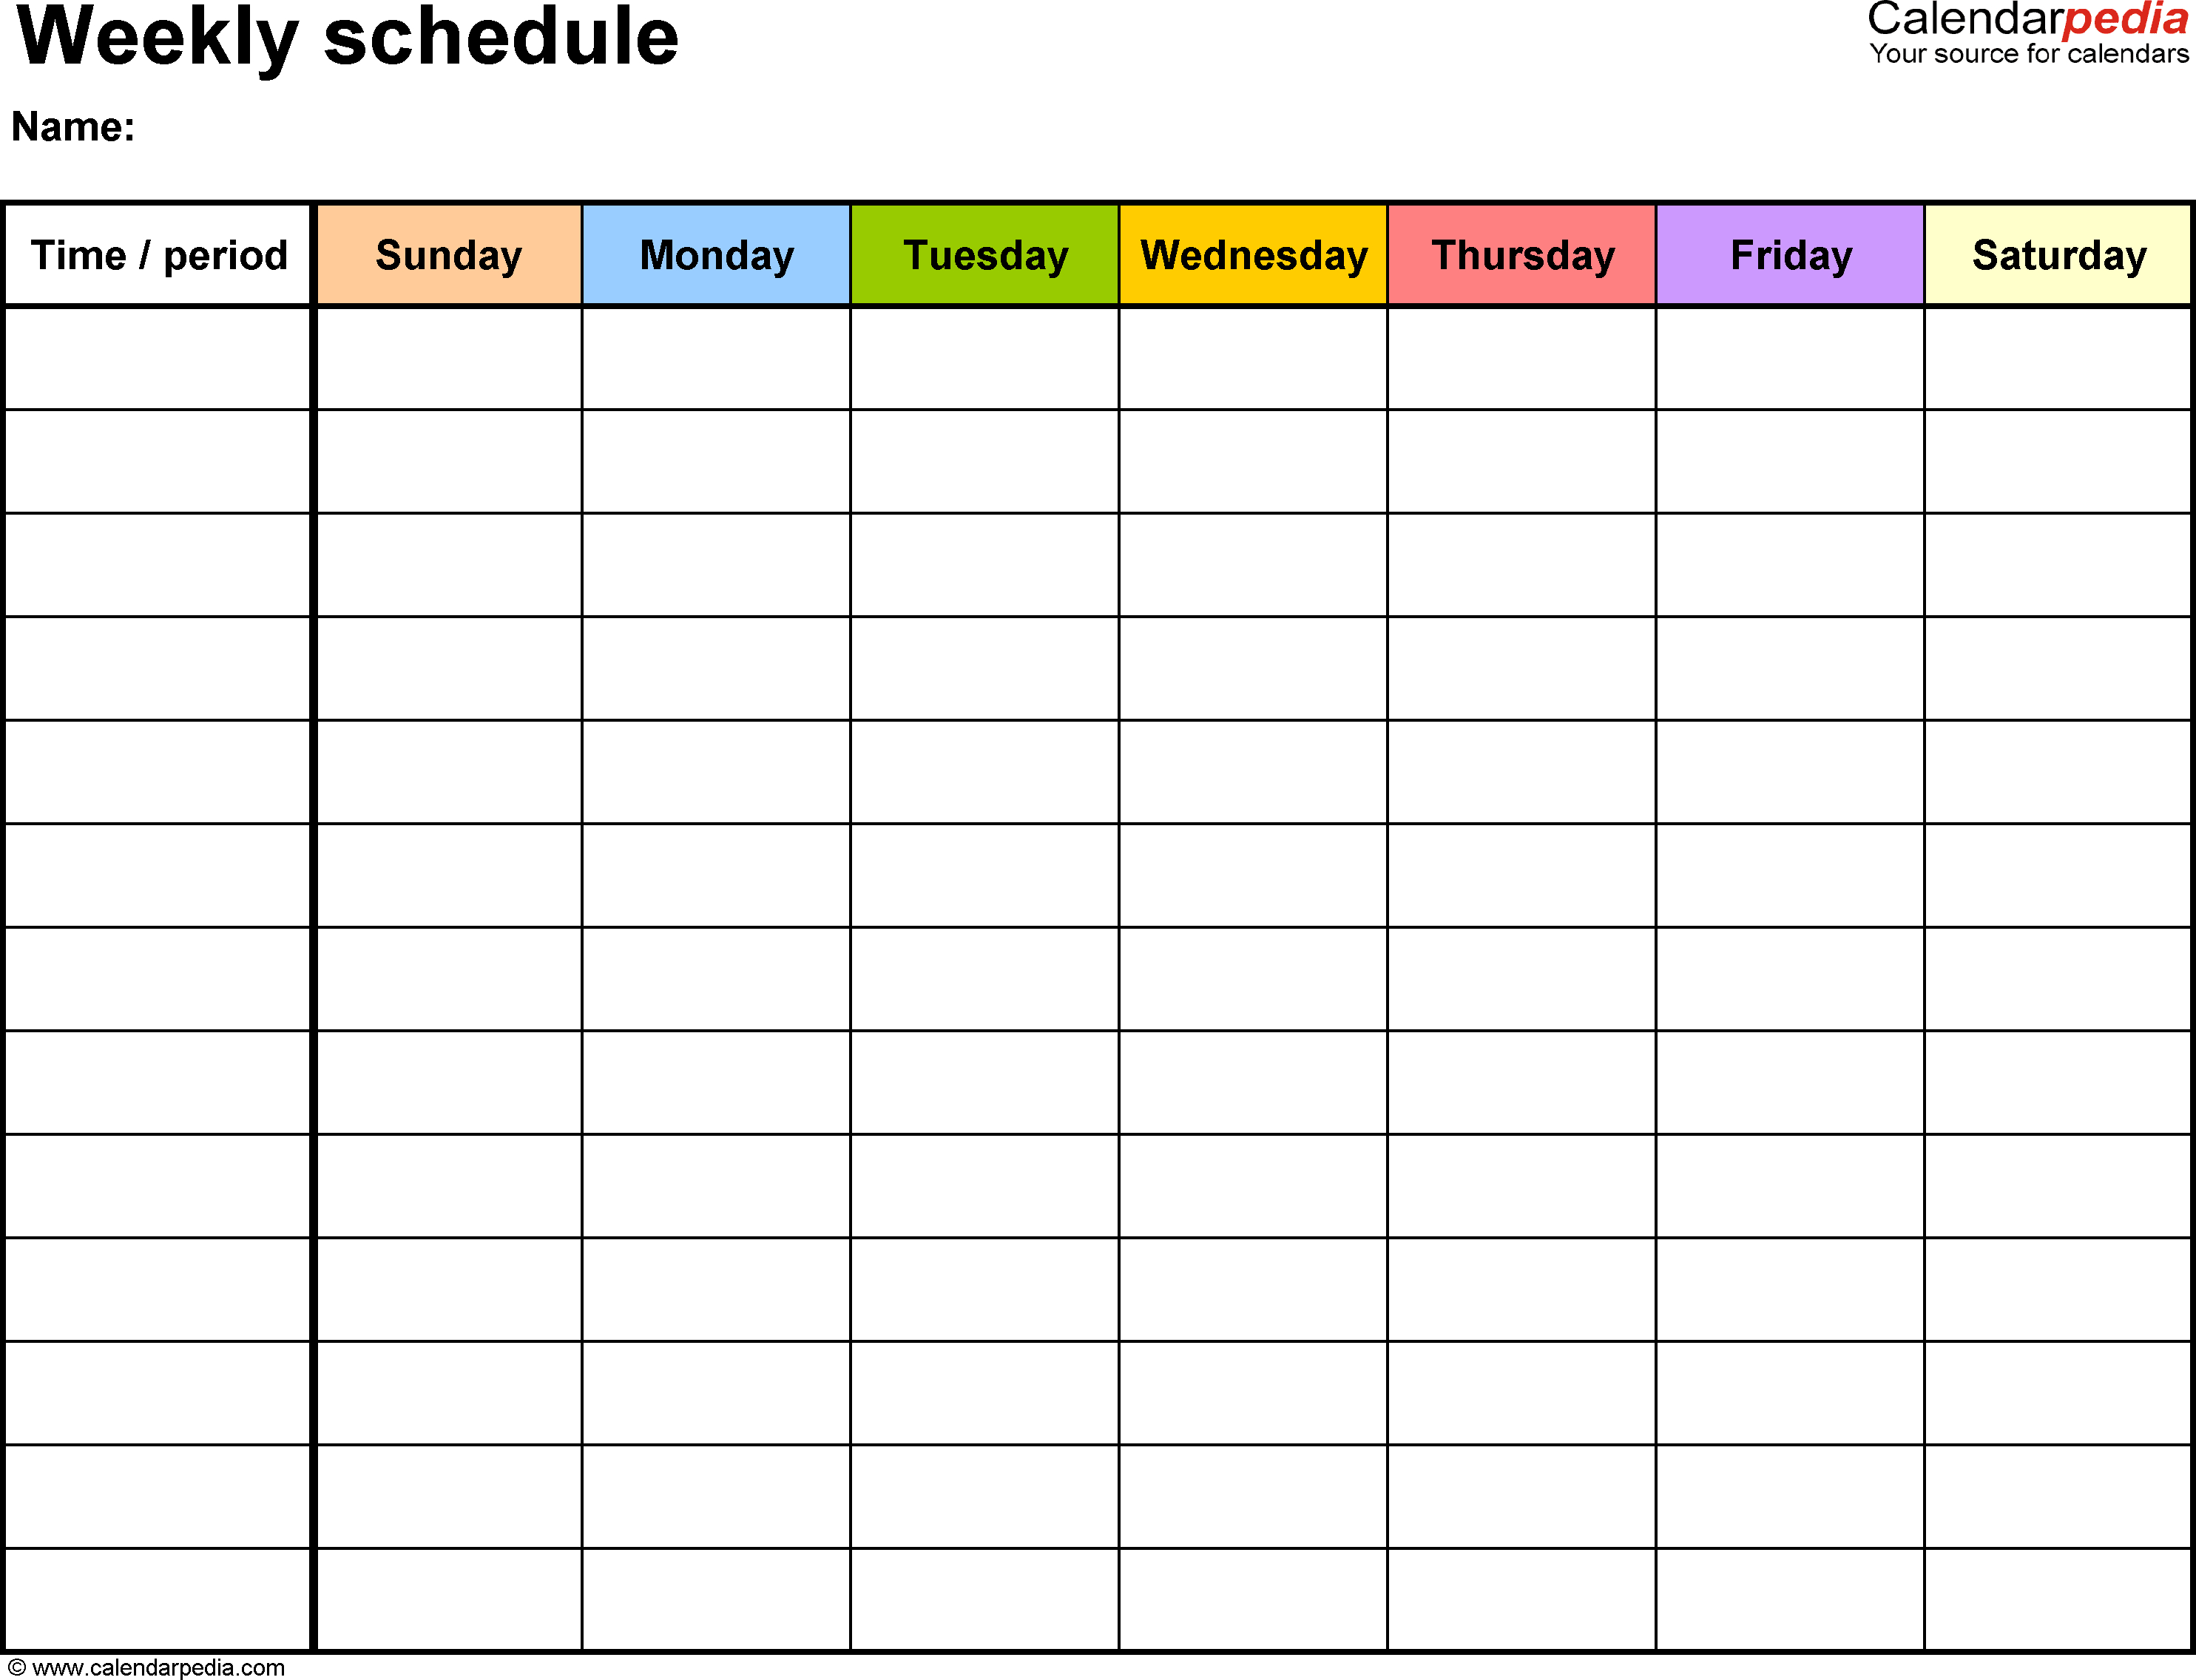 Free Weekly Schedule Templates For Excel - 18 Templates in Summer Schedule Template For Kids